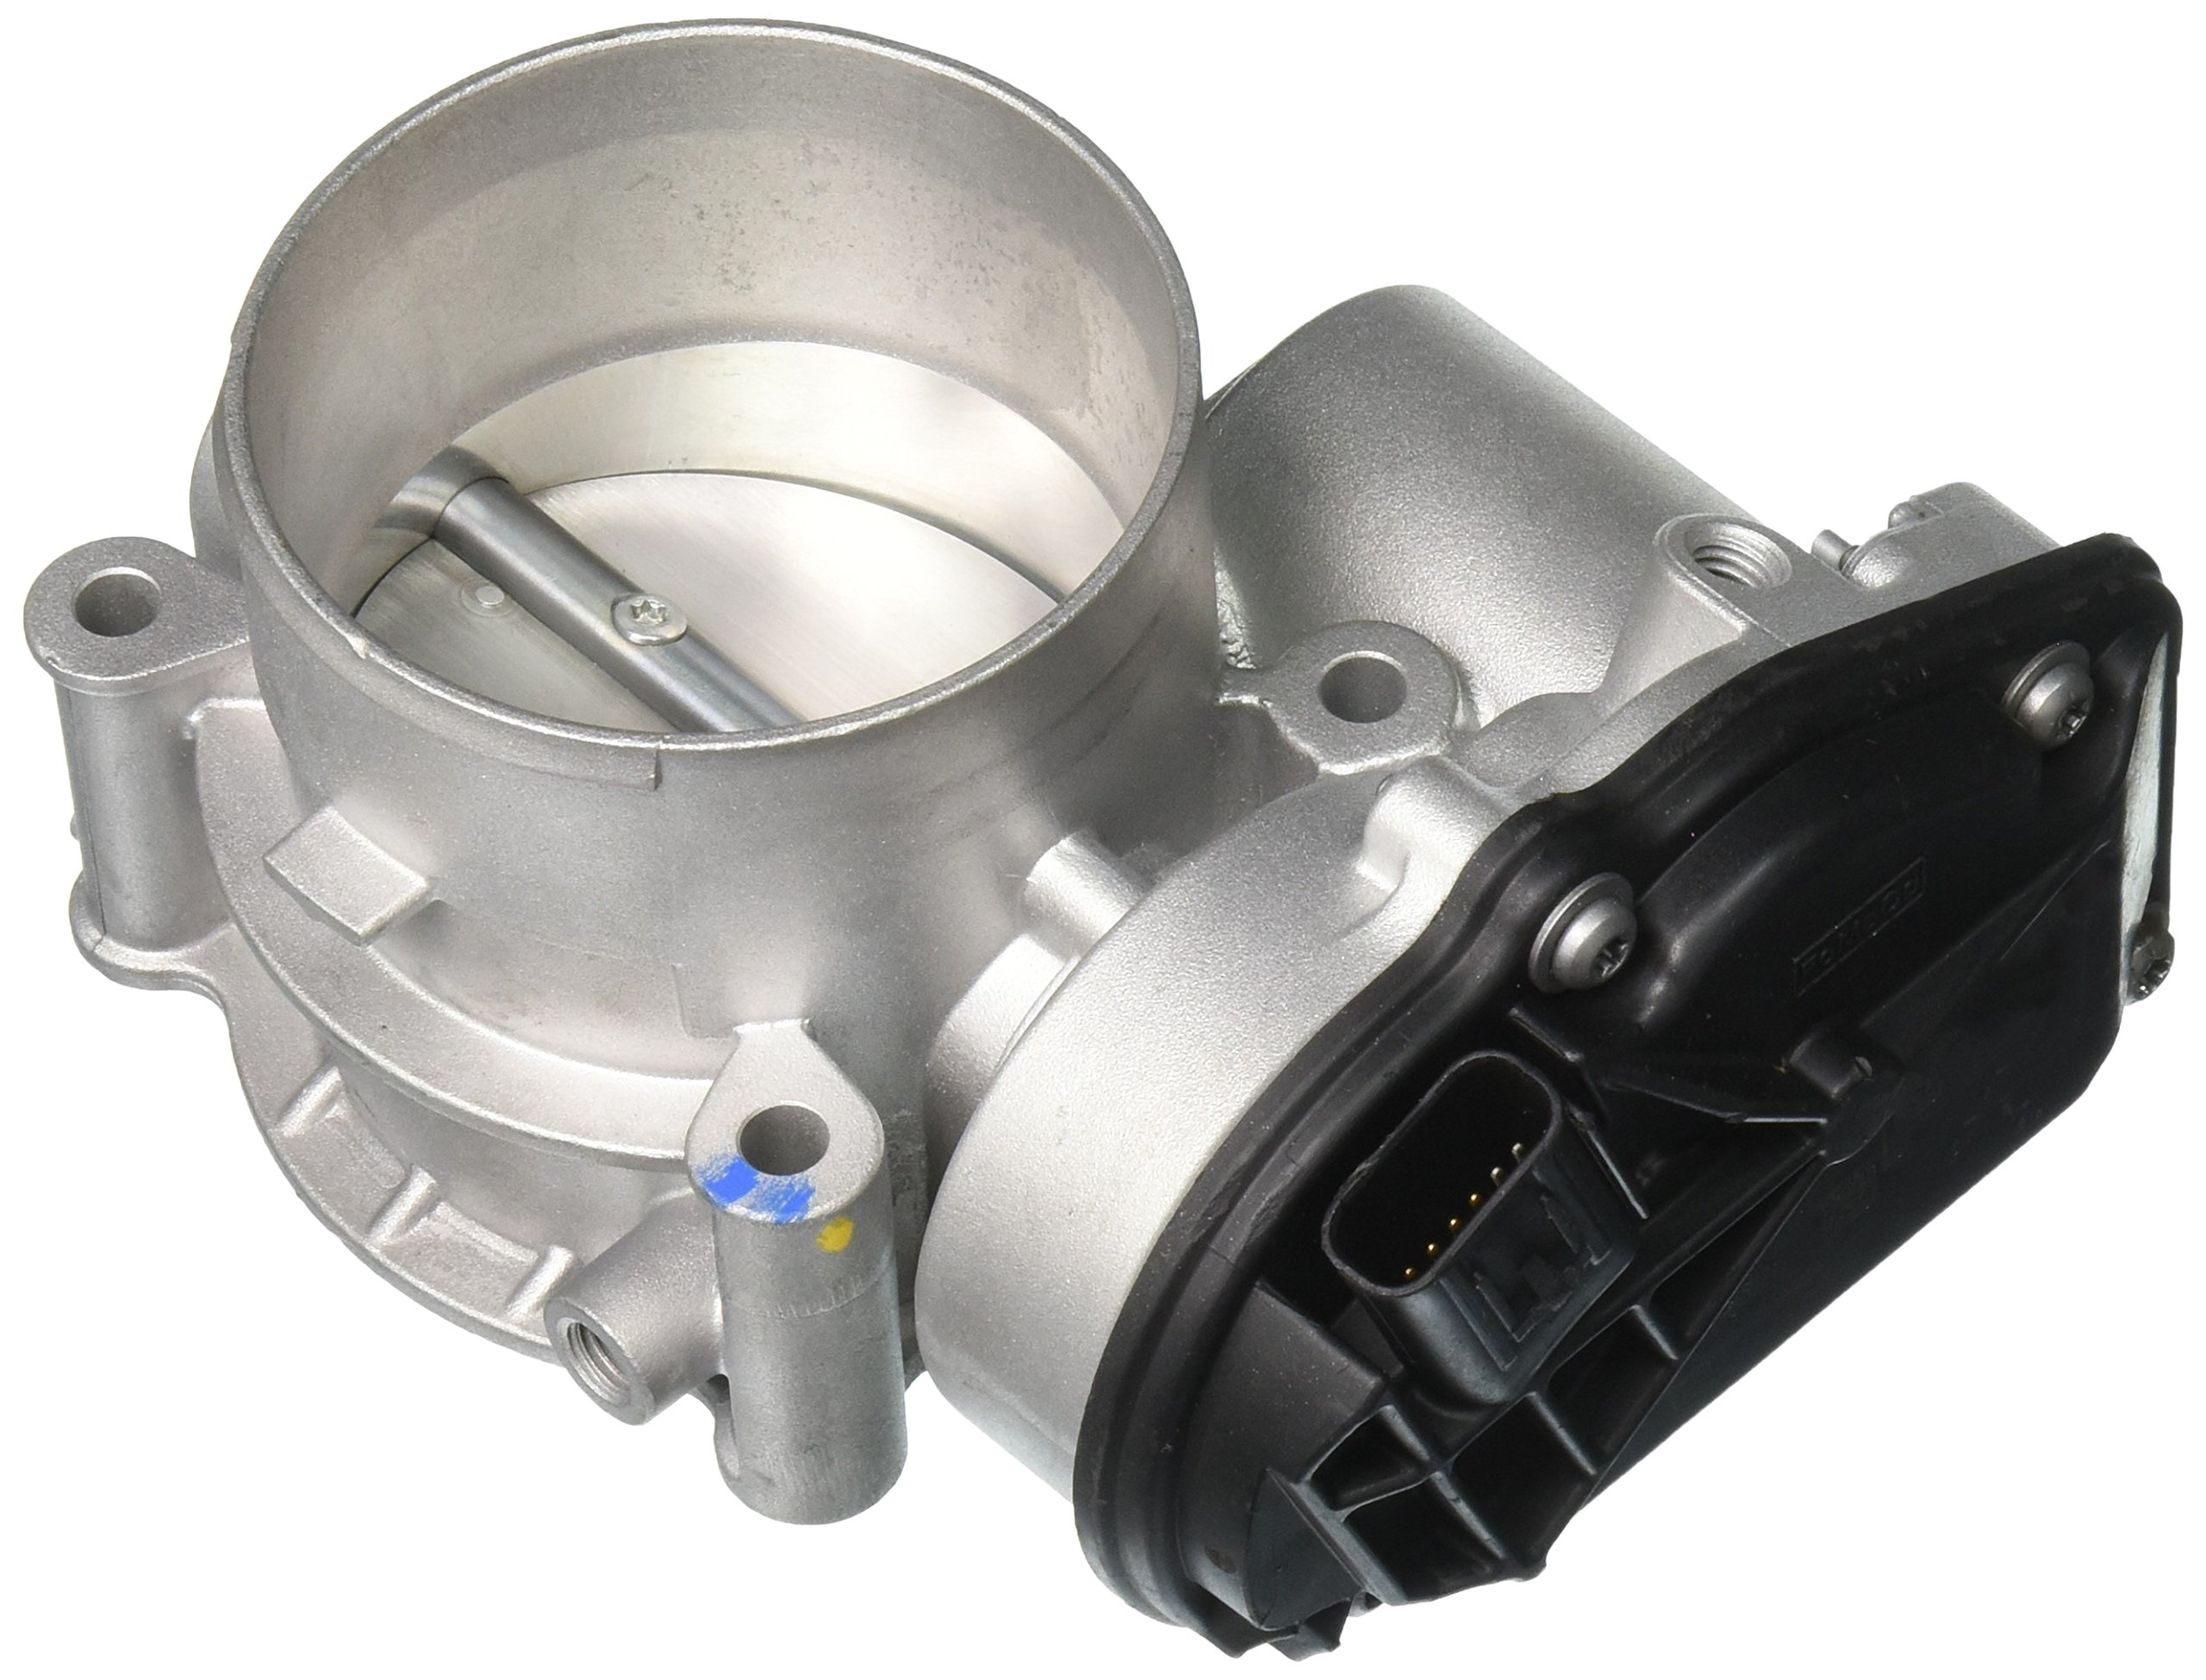 A1 Cardone 67-6018 Remanufactured Throttle Body, 1 Pack by A1 Cardone